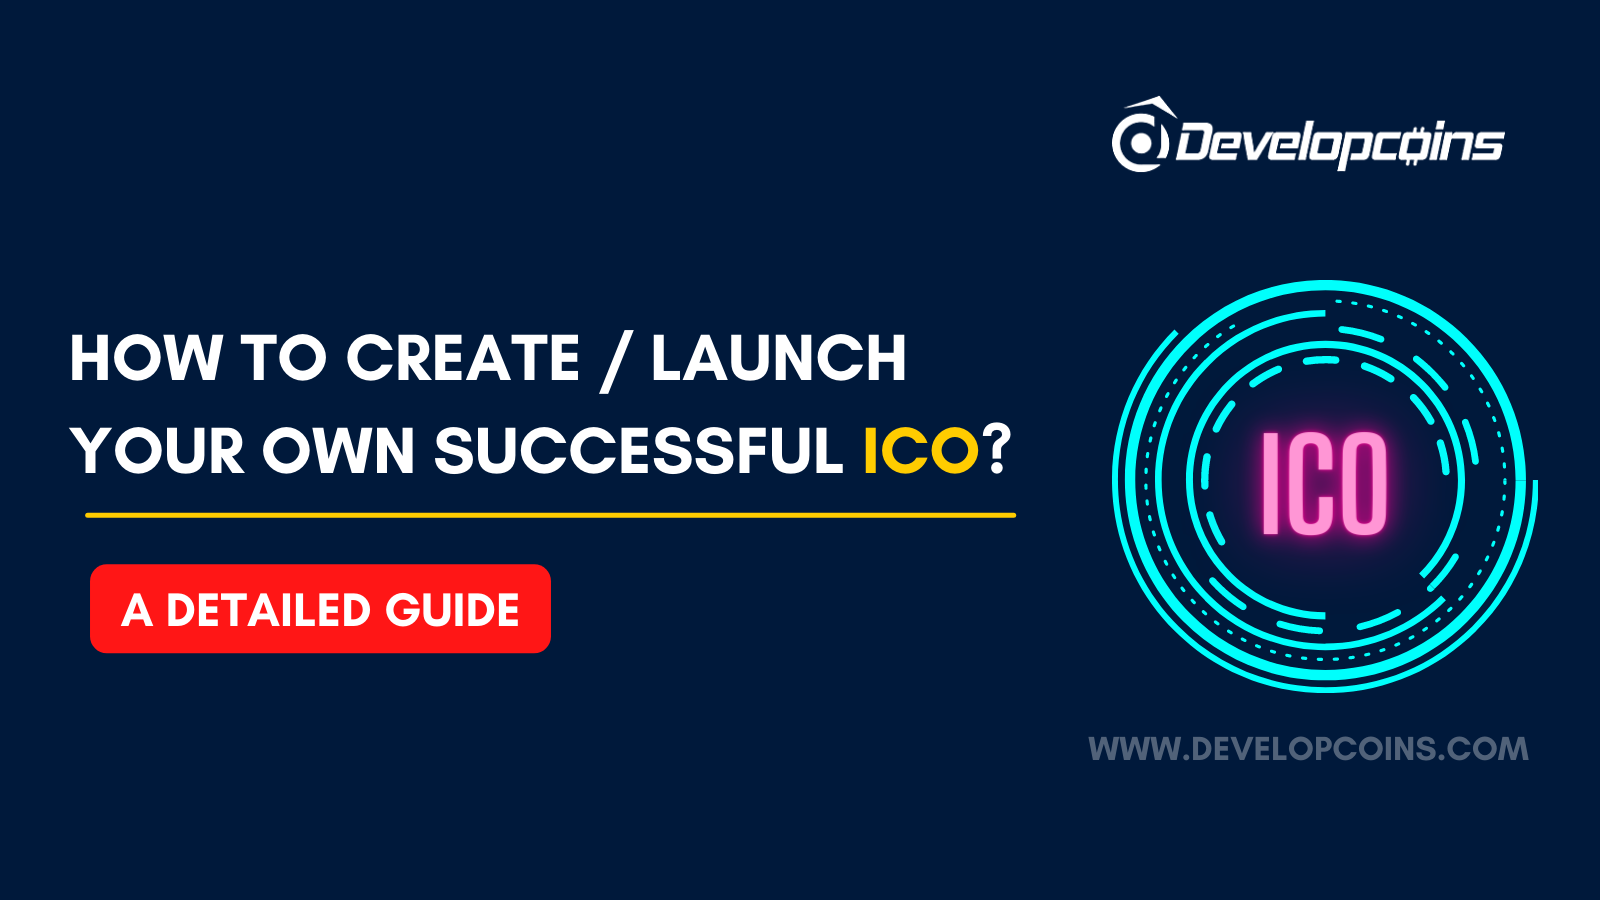 How to Create / Launch Your Own Successful ICO?